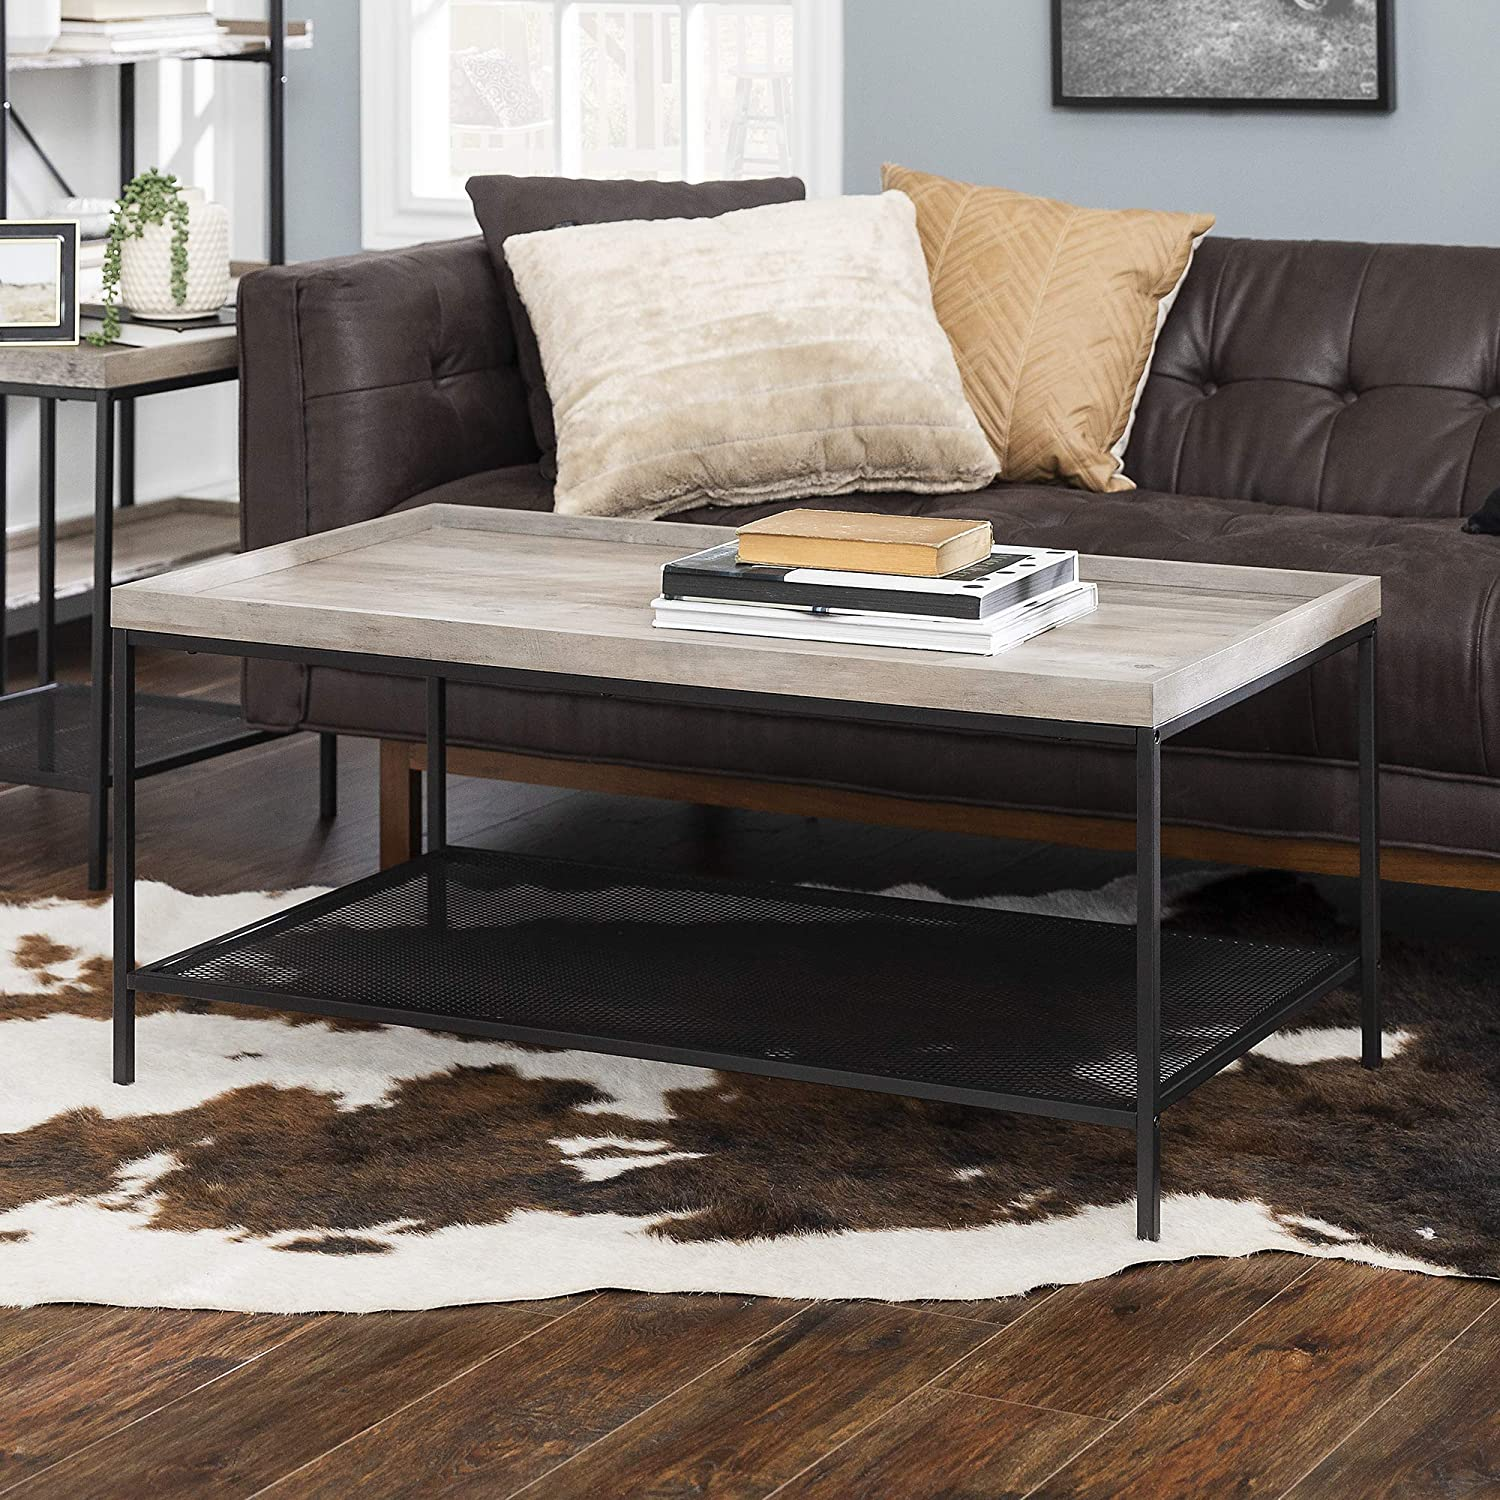 Walker Edison Furniture Industrial Coffee Accent Table Living Room Rectangle, 42 Inch, Grey